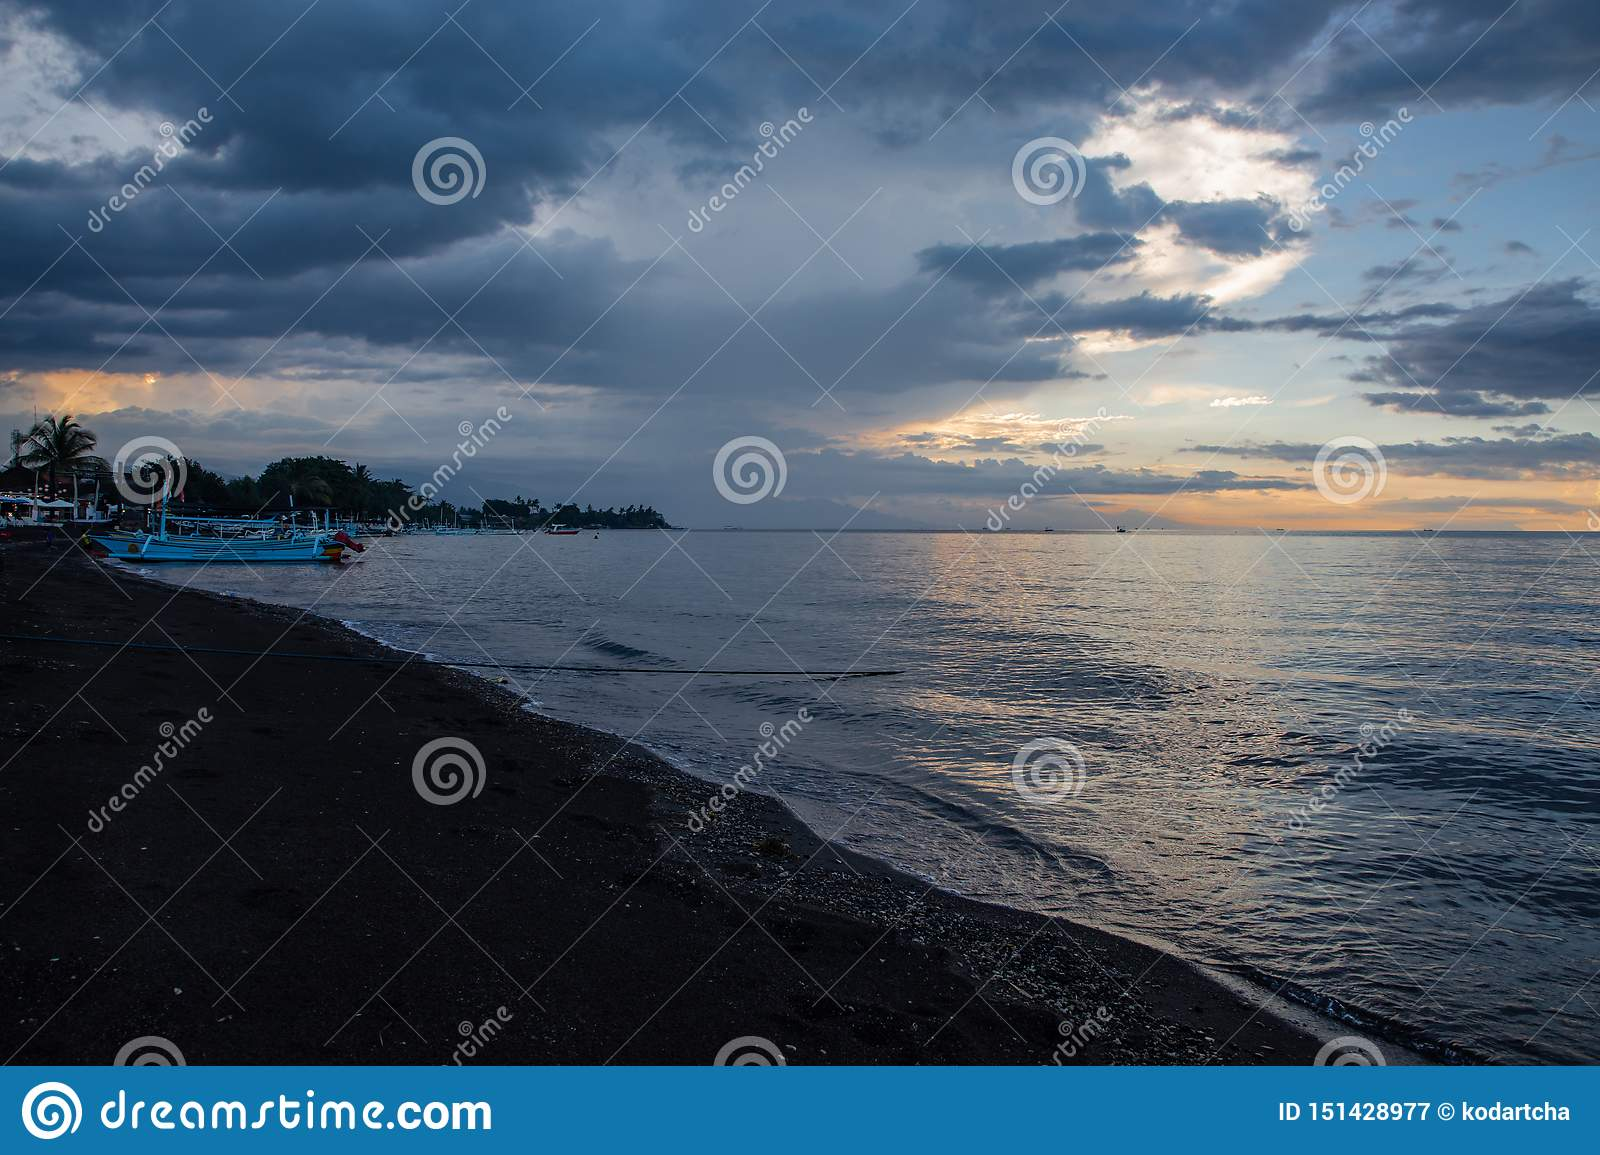 Blue hour over calm ocean and black sand beach with balinese boat